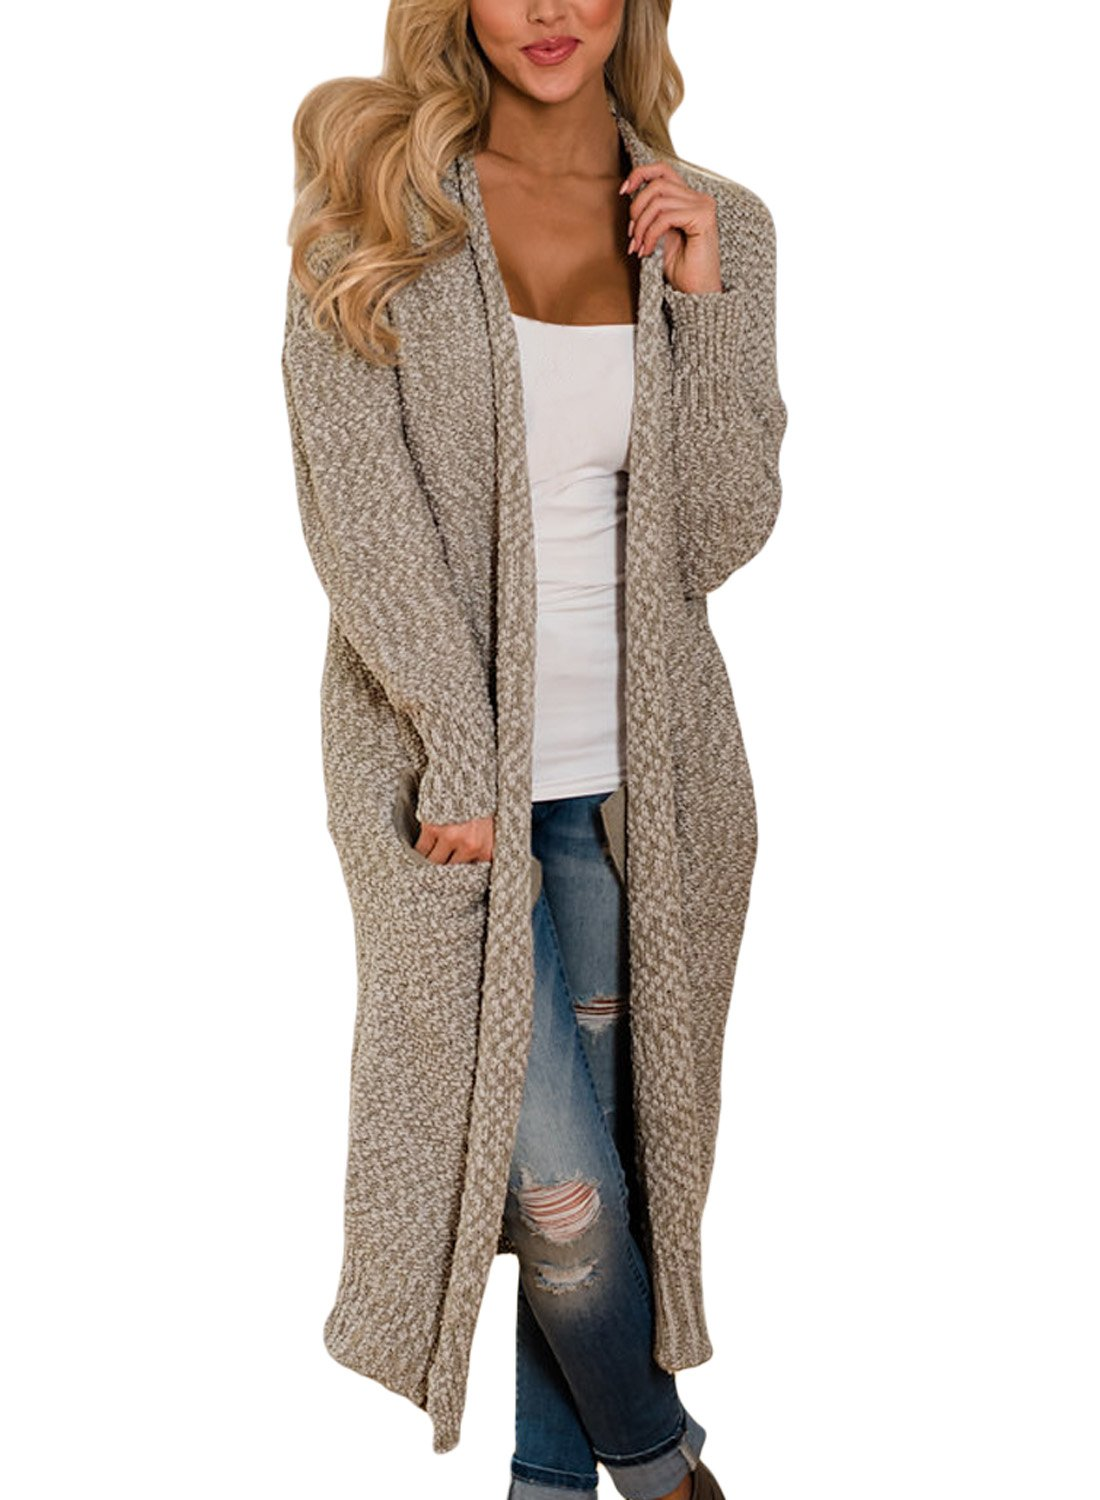 HOTAPEI Women's Autumn Winter Pockets Mitten Cable Knit Long Sleeve Loose Open Front Long Maxi Cardigan Sweaters Solid Sweater Coats Khaki Medium